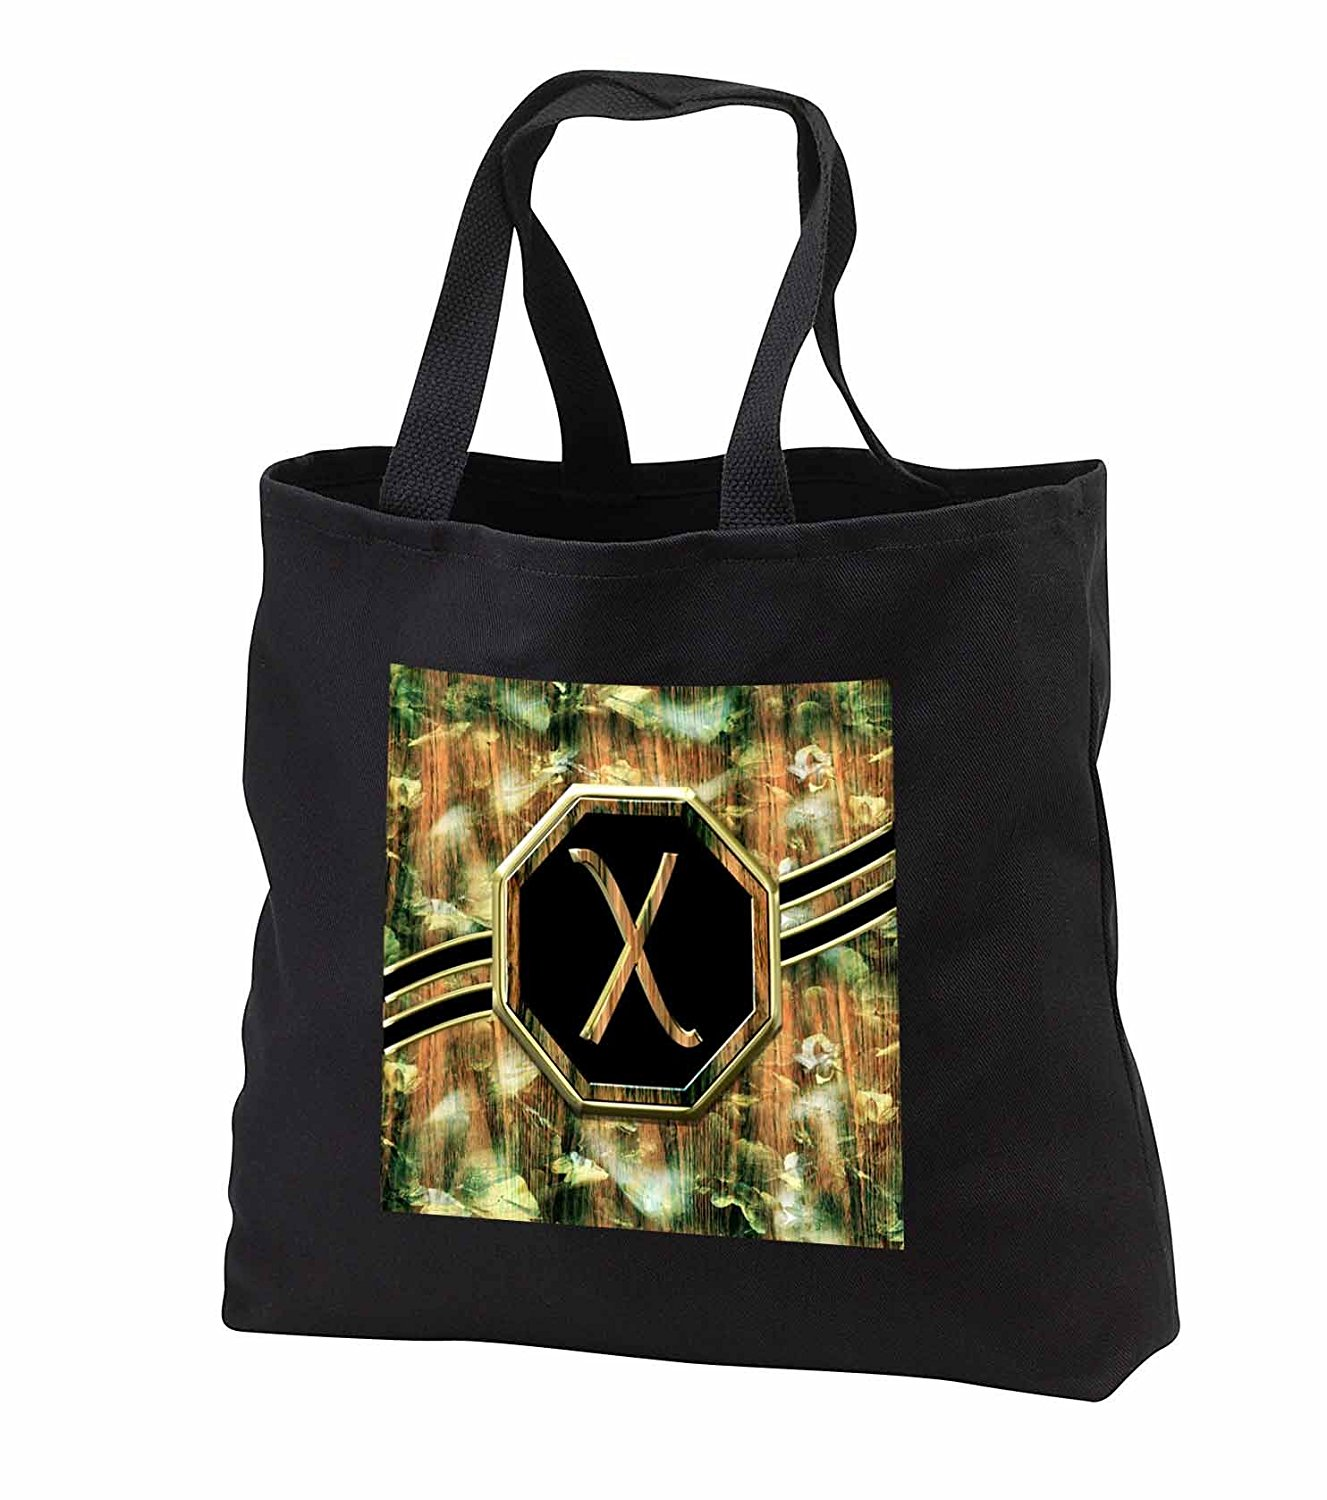 tb_242353 Charlyn Woodruff - CW Designs Monogram Camouflage - Elegant Camouflage Monogram Letter X Faux Gold Wood Grain Image - Tote Bags